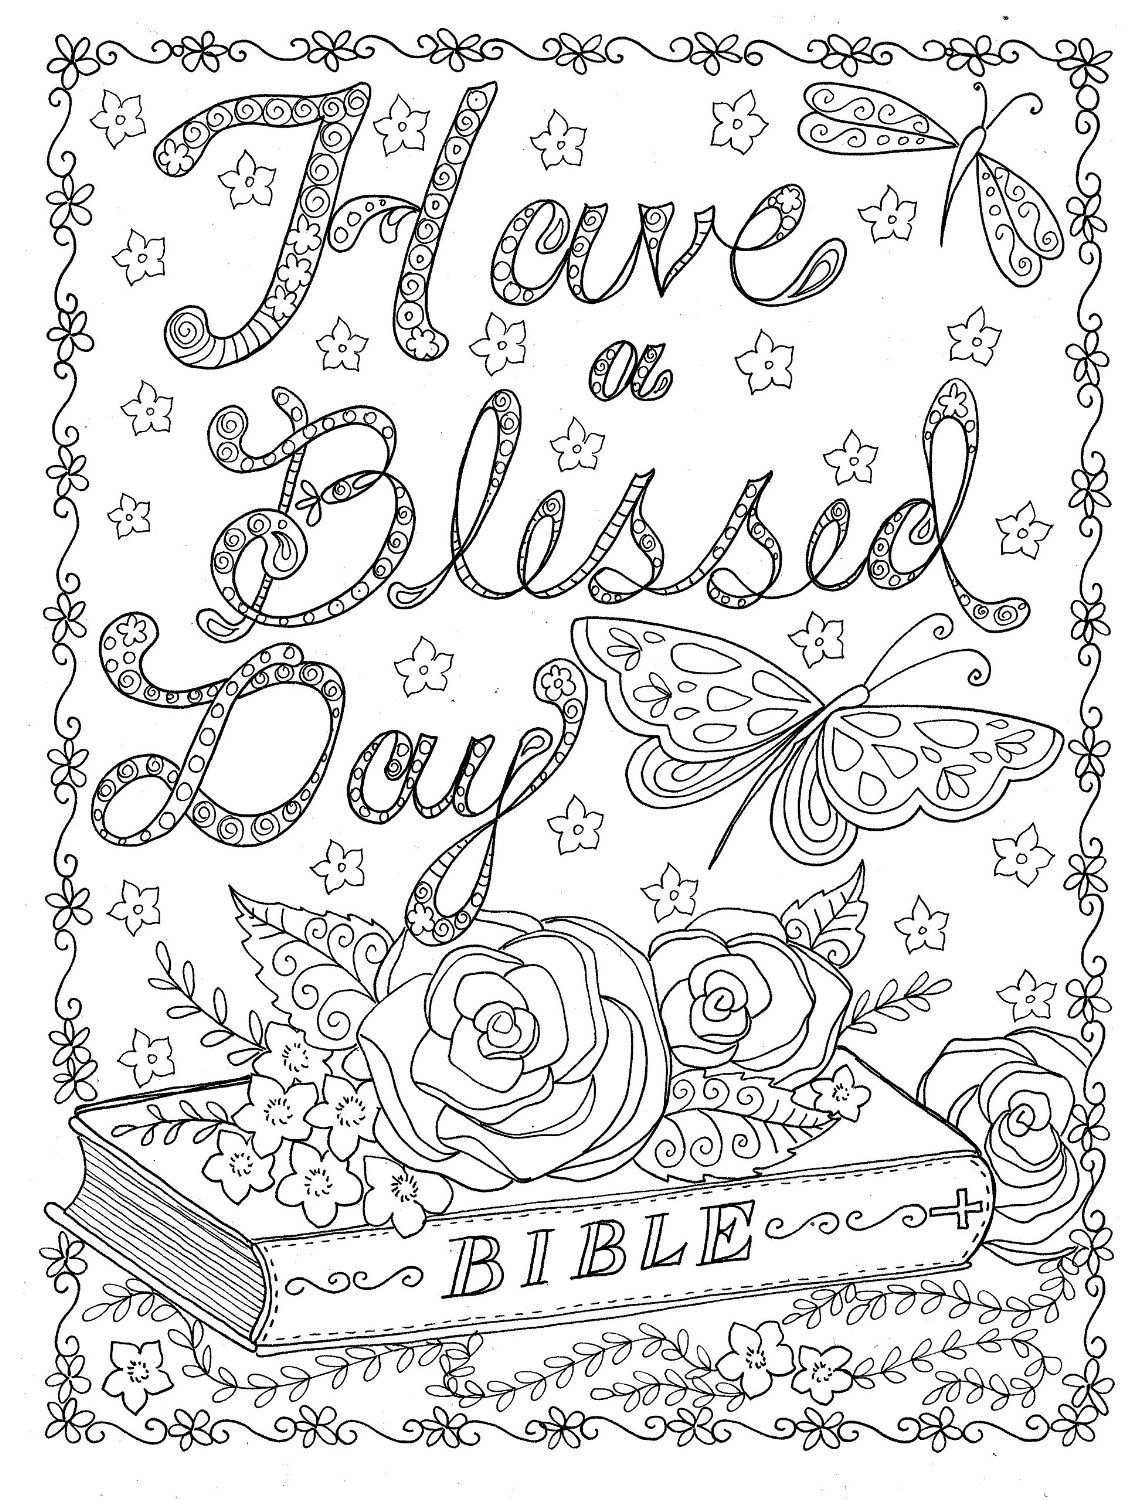 Scripture Garden Christian Coloring Prayers of Faith, Love and Hope ...